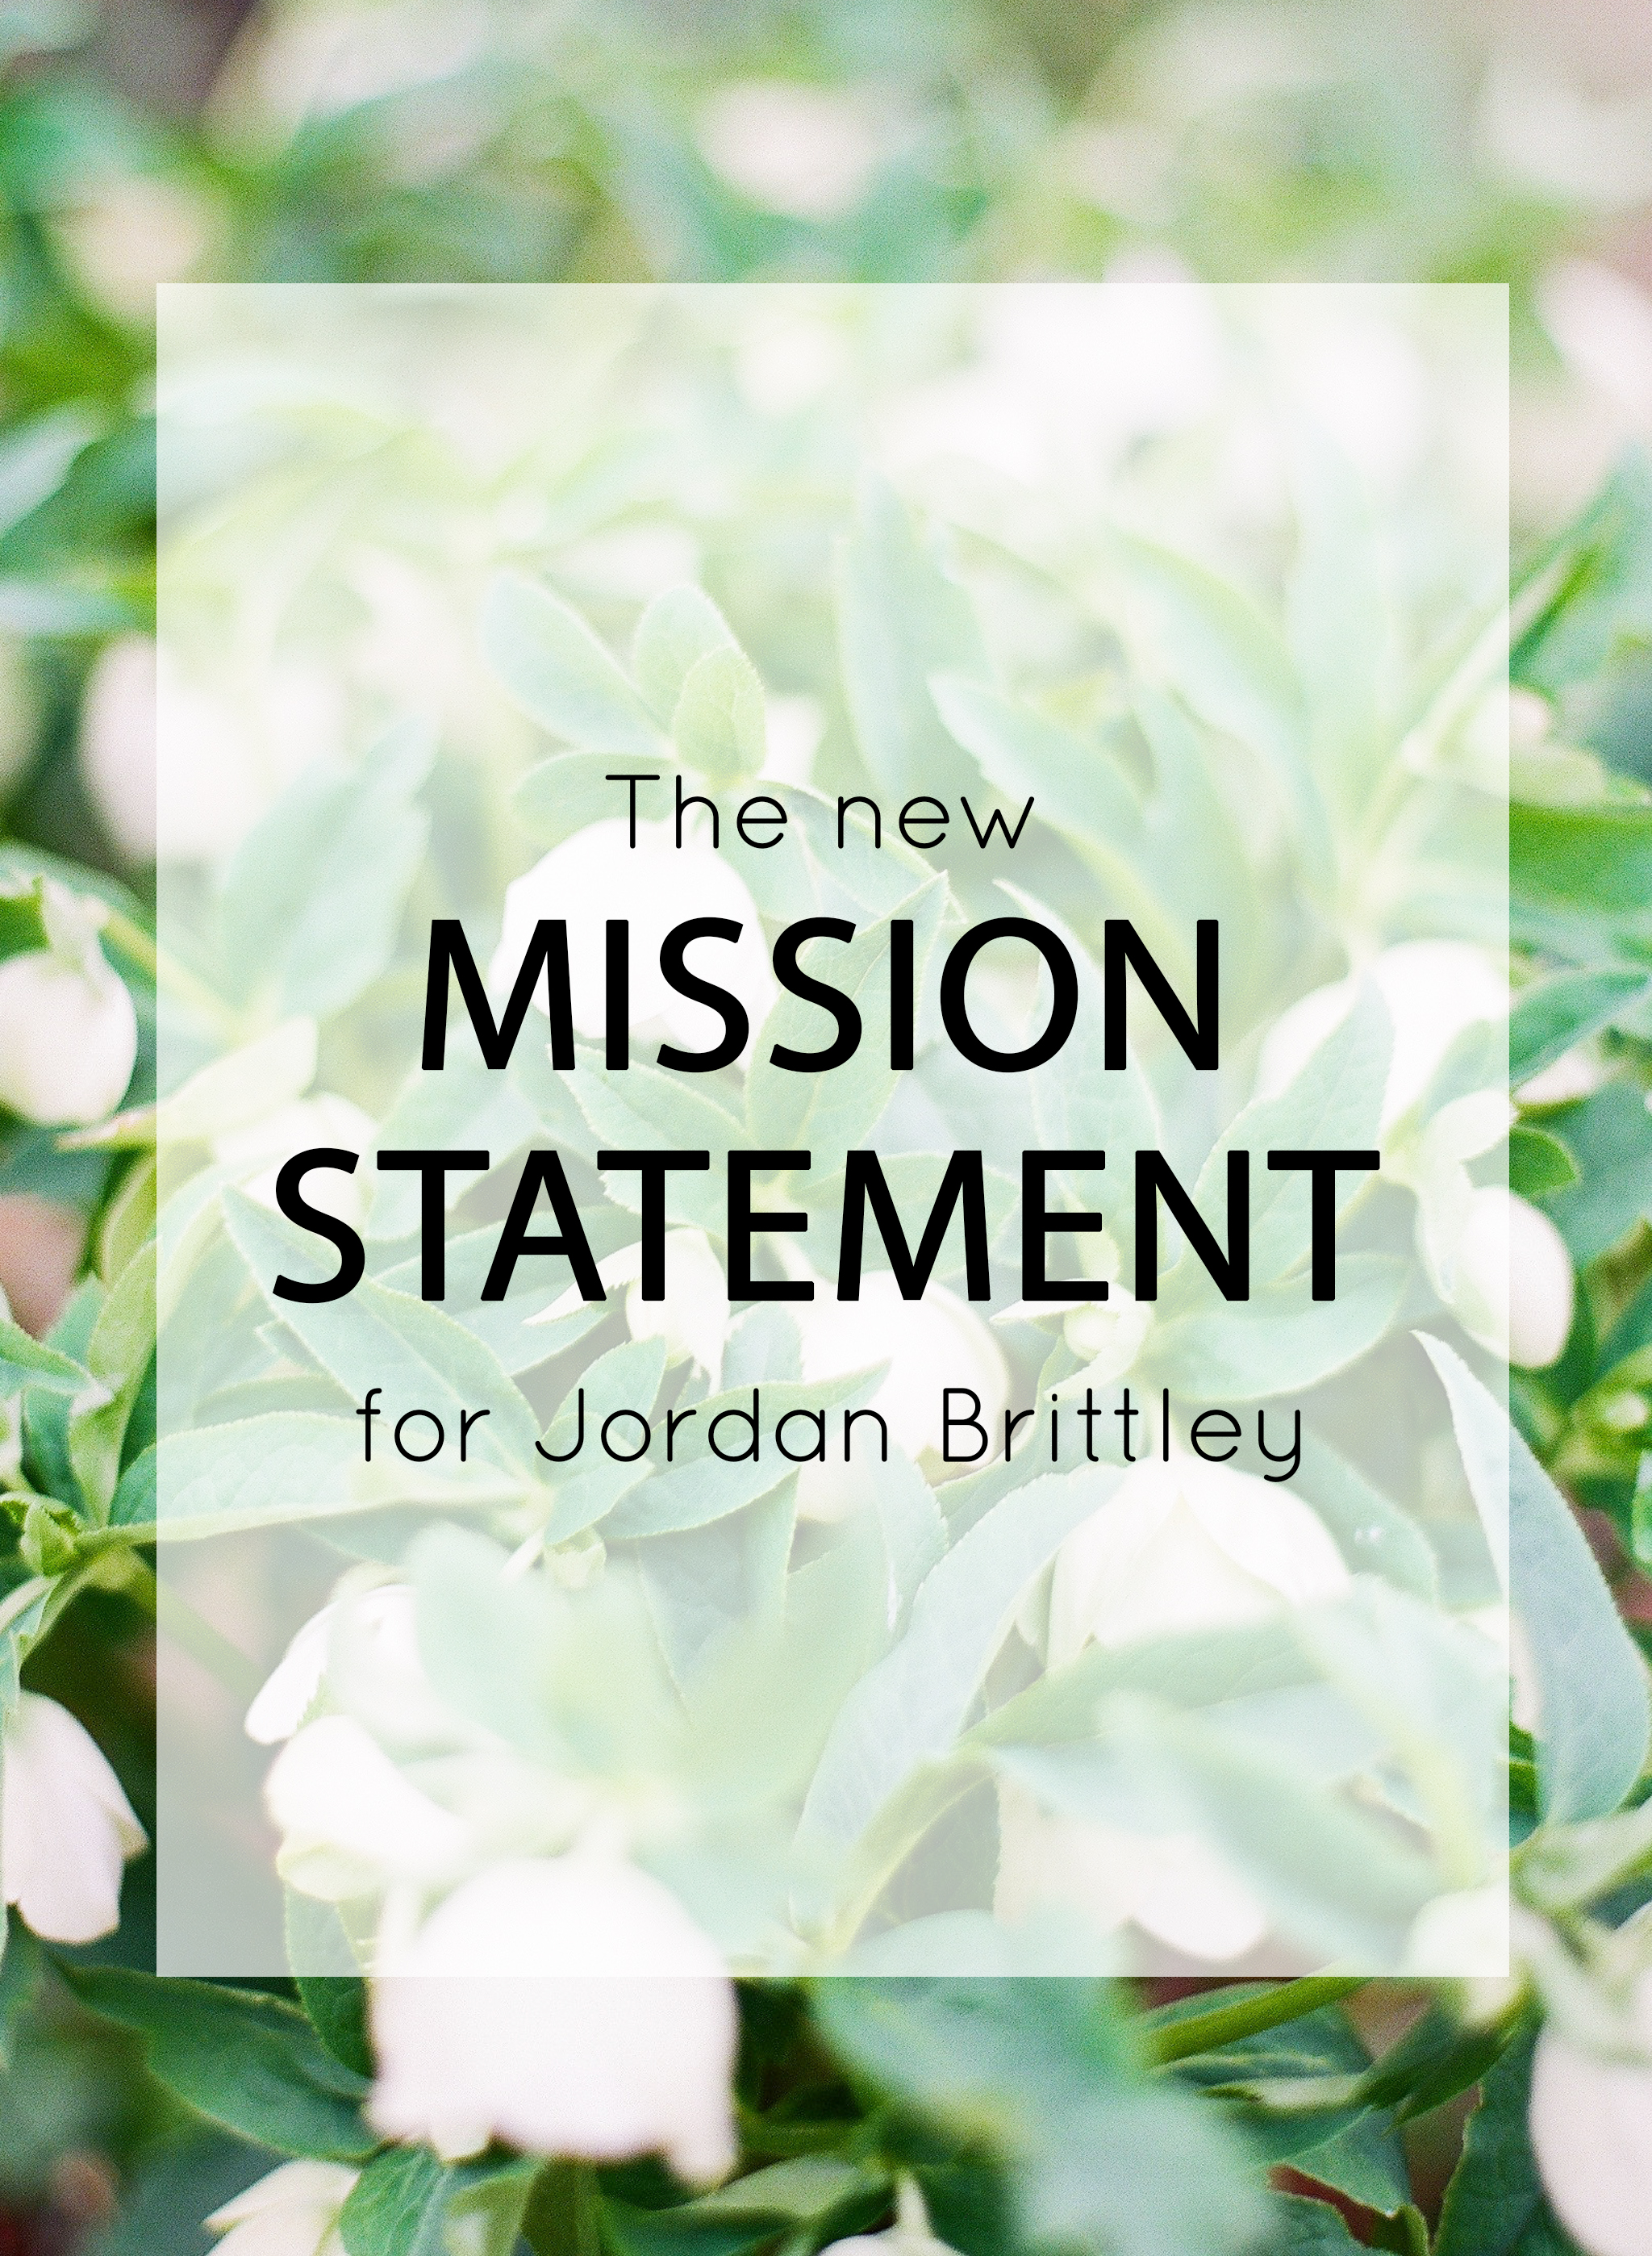 The new mission statement for Jordan Brittley